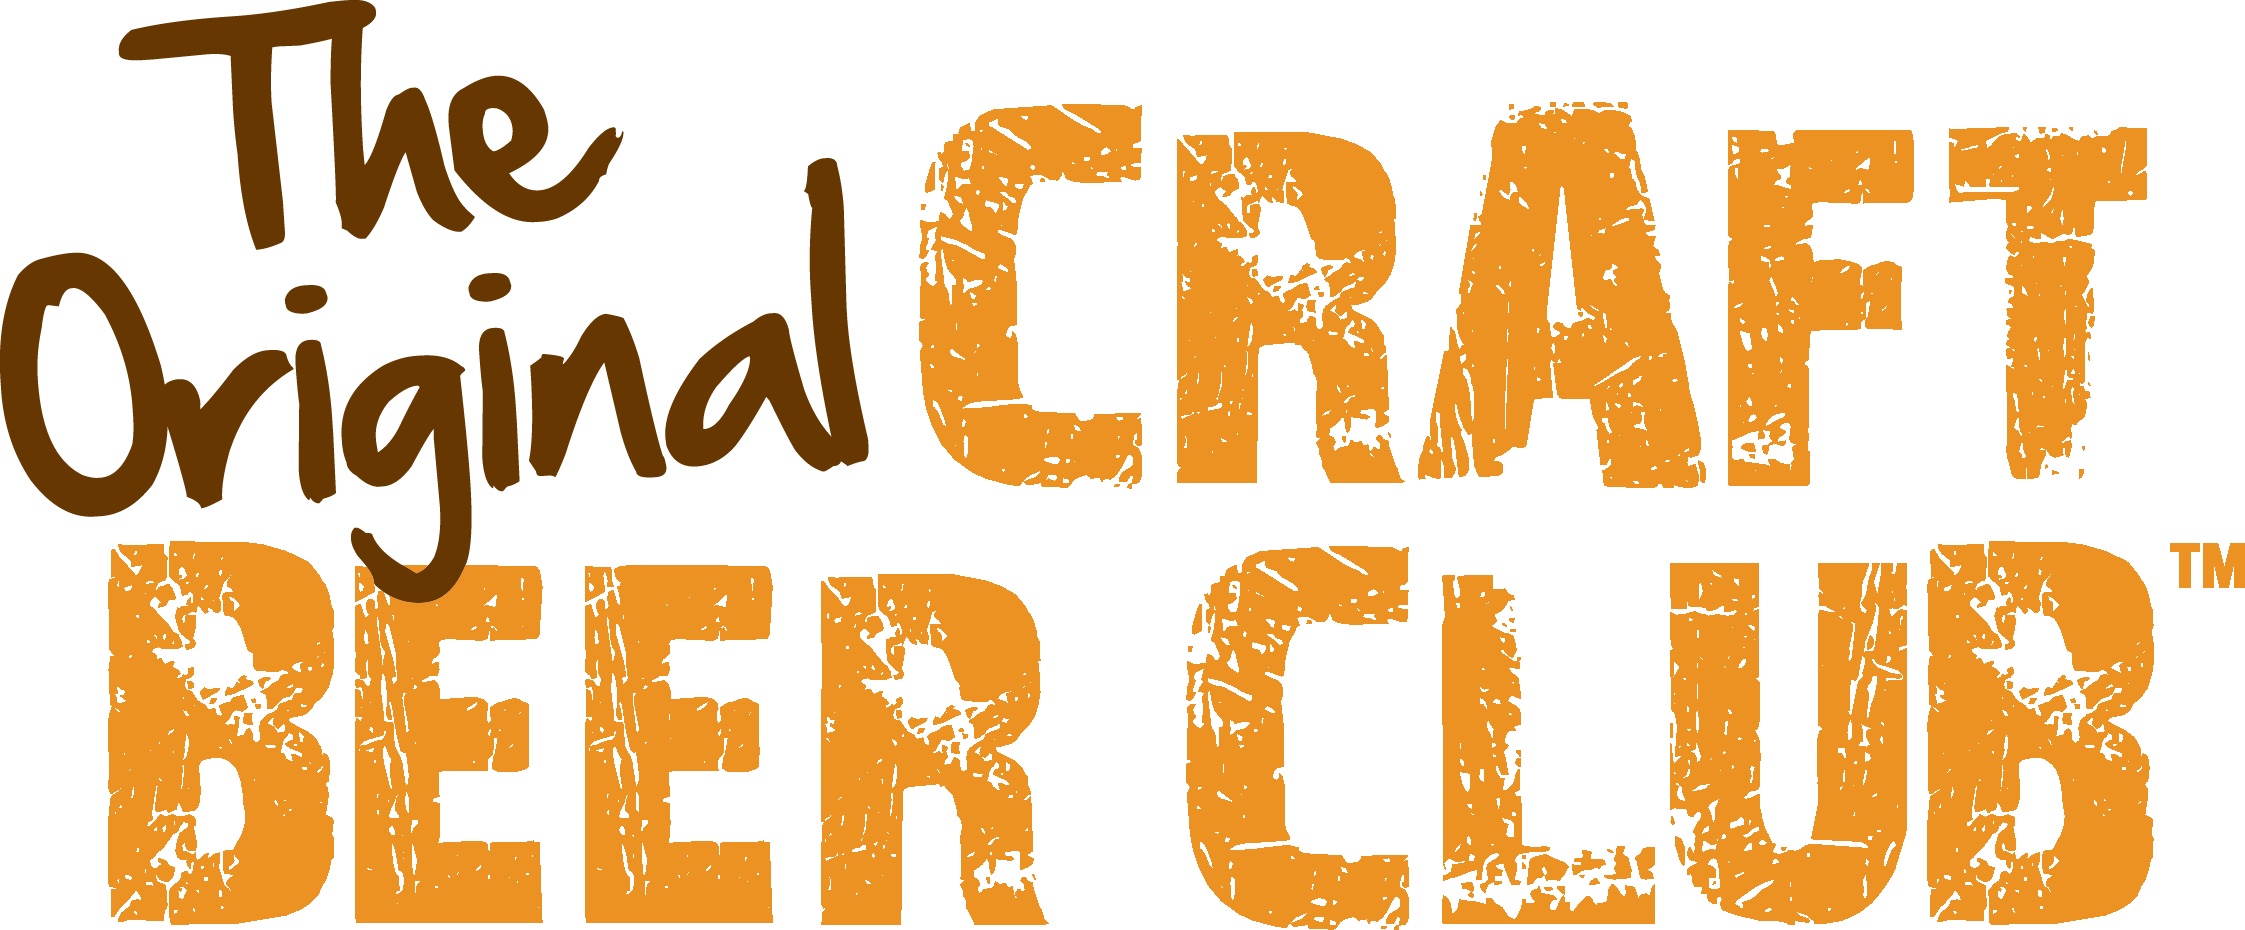 Beer of the month club craft beer the original craft for Craft beer month club